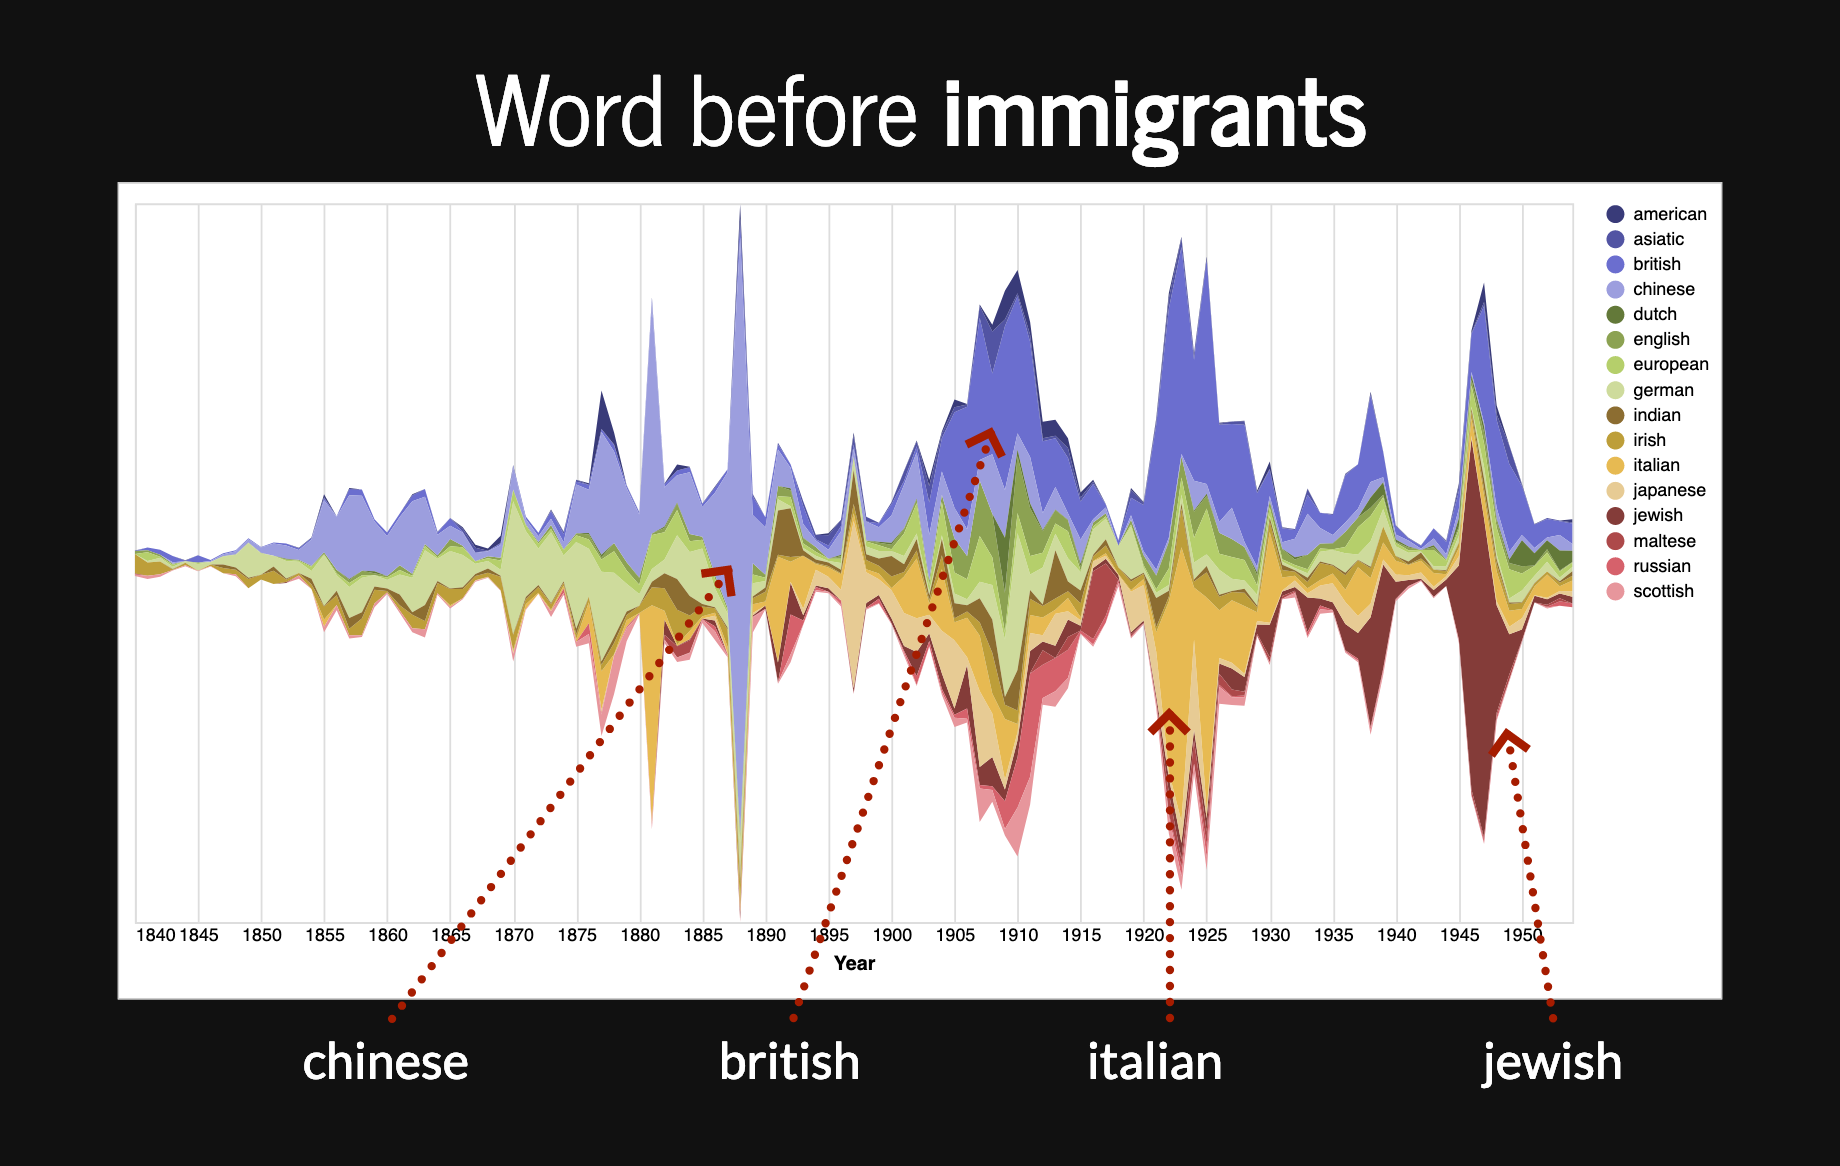 Words appearing before immigrants relating to ethnic or national origin